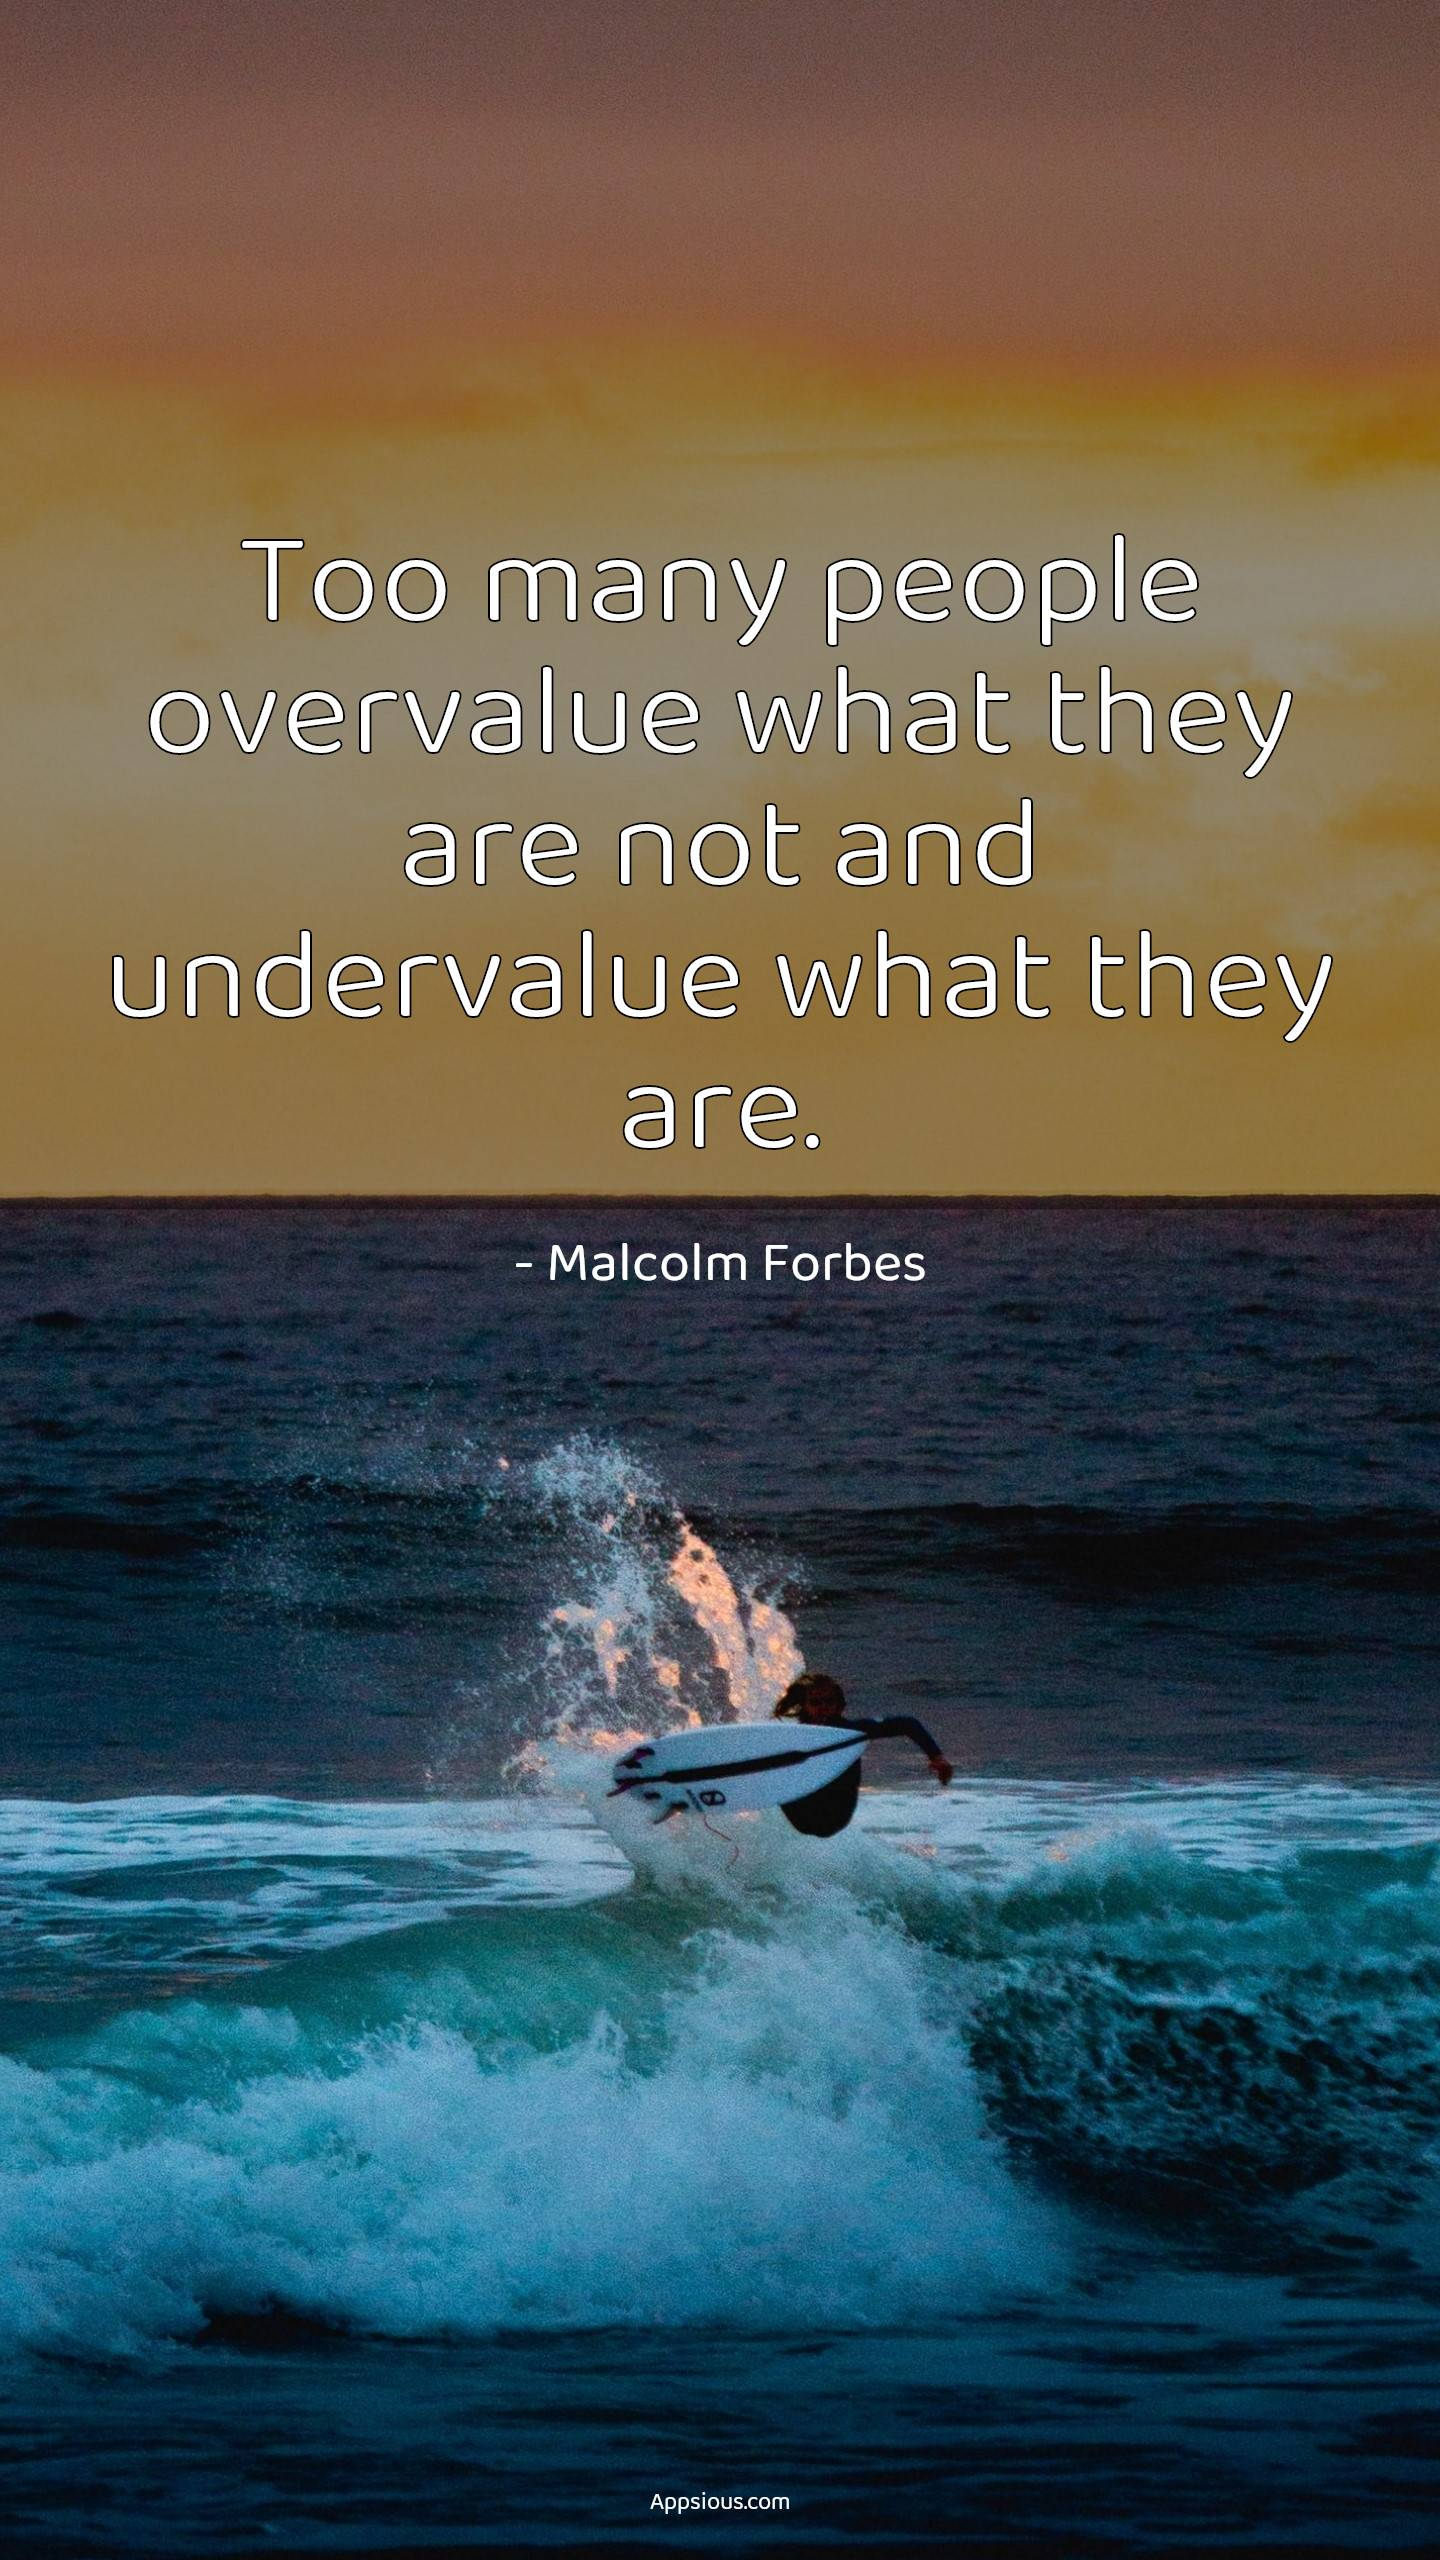 Too many people overvalue what they are not and undervalue what they are.